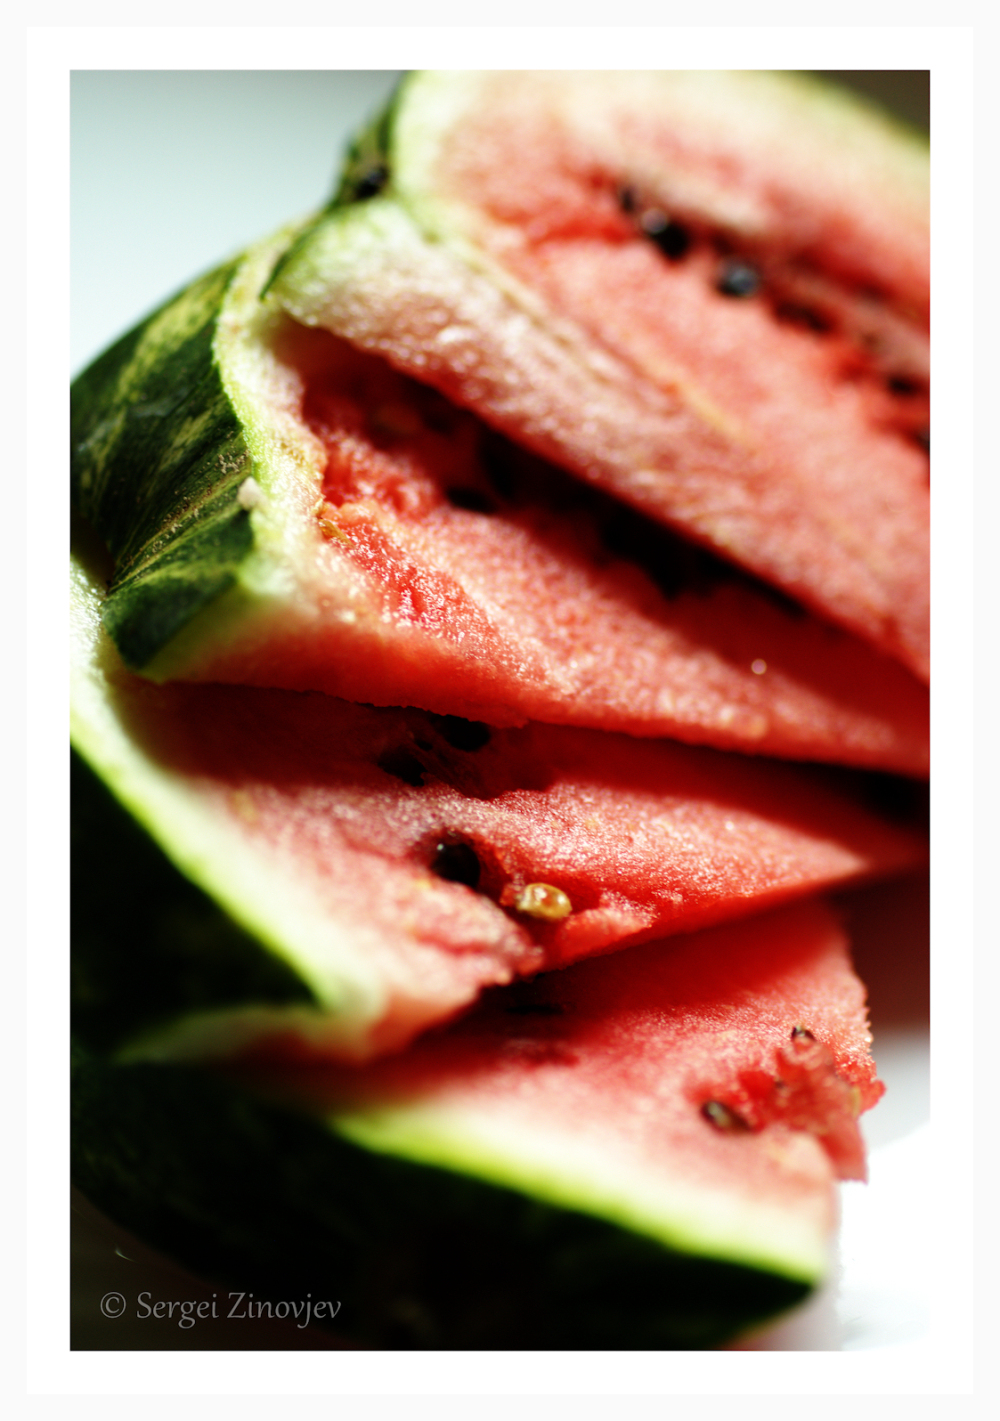 close-up of watermelon slices